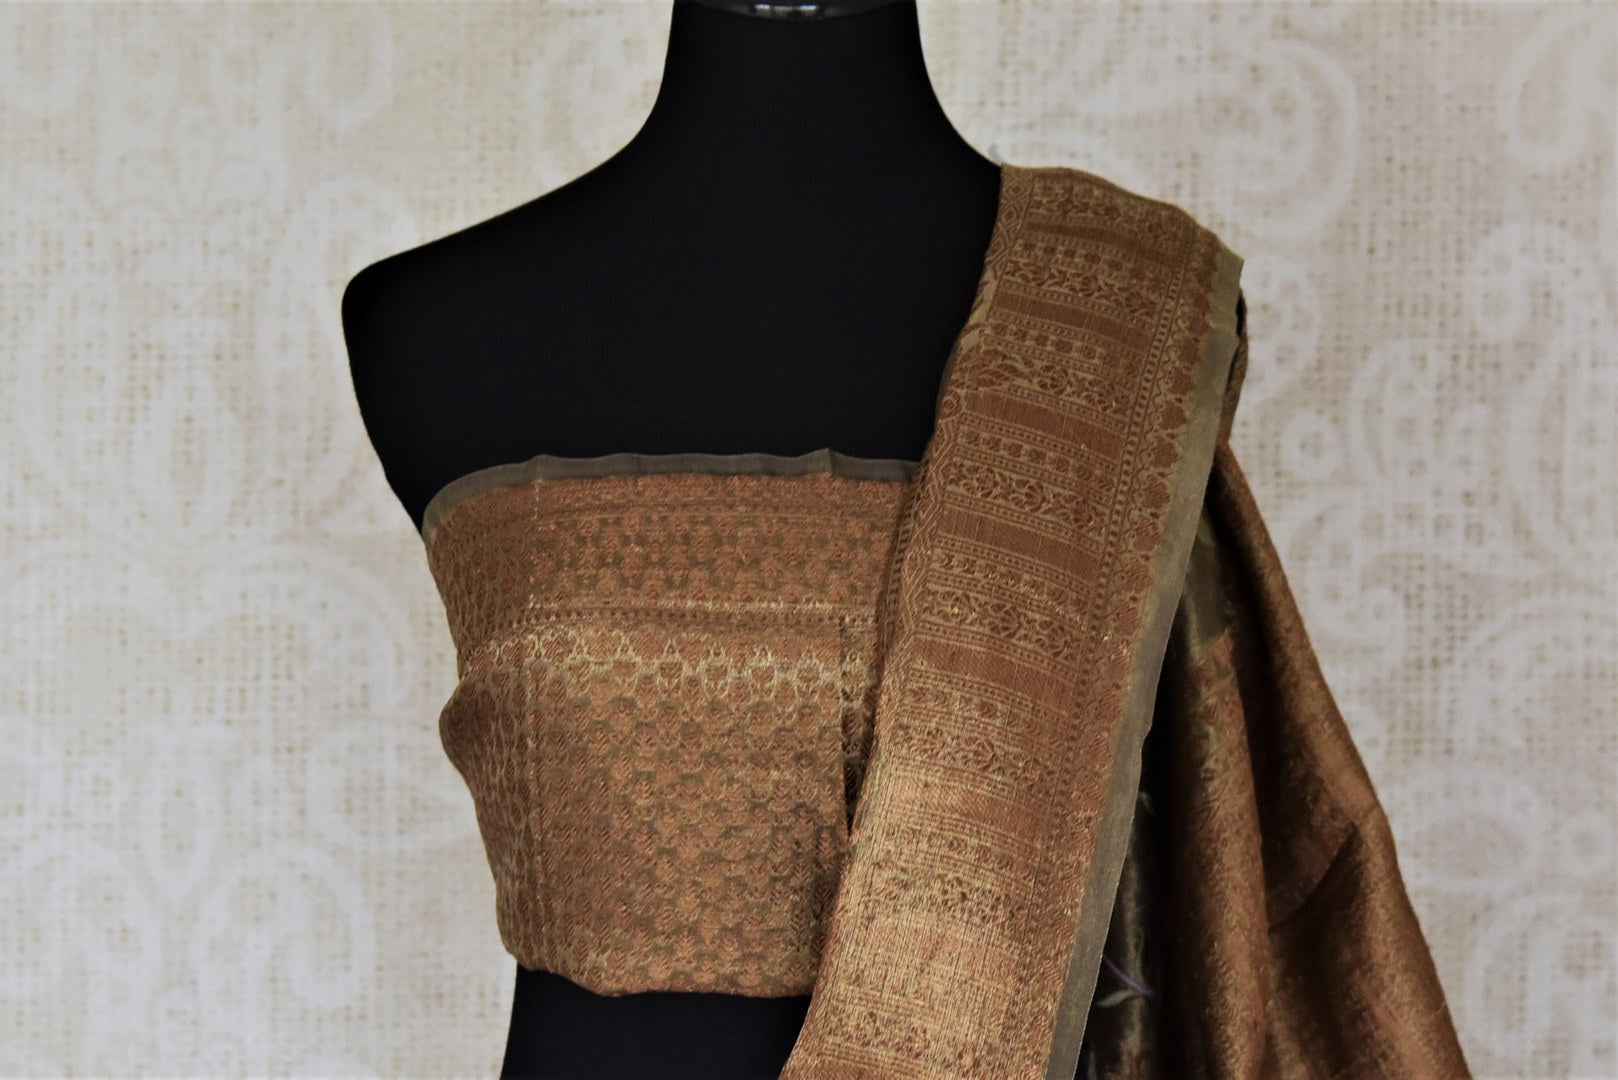 Buy gorgeous golden embroidered metallic linen sari online in USA. Be the talk of the occasions in exquisite linen sarees, embroidered saris from Pure Elegance Indian fashion store in USA. -blouse pallu